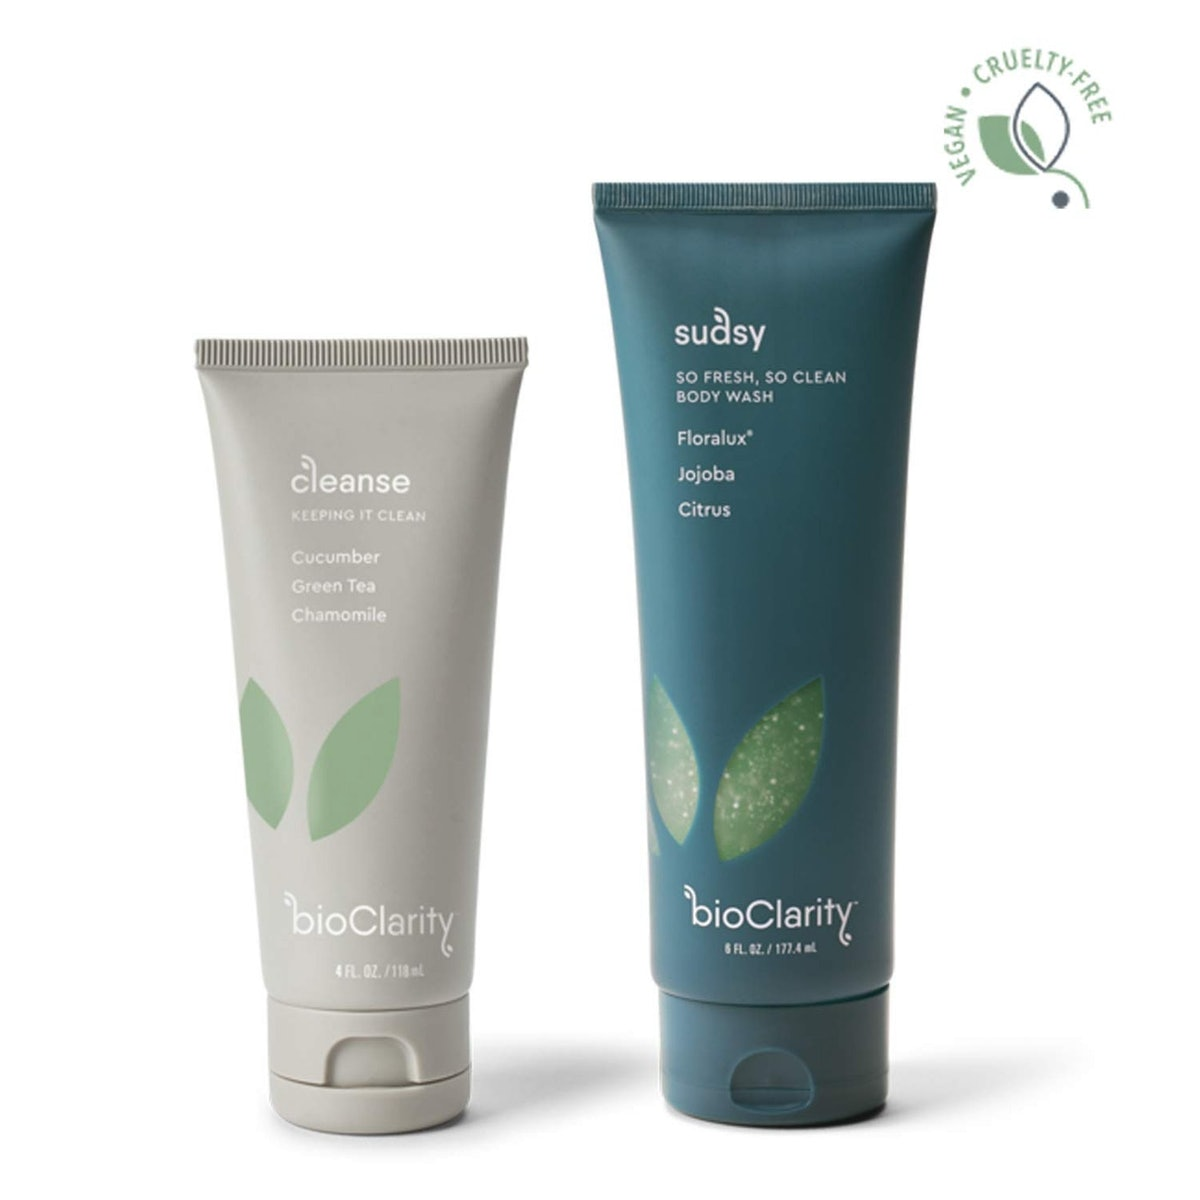 bioClarity Natural Face Cleanser & Body Wash